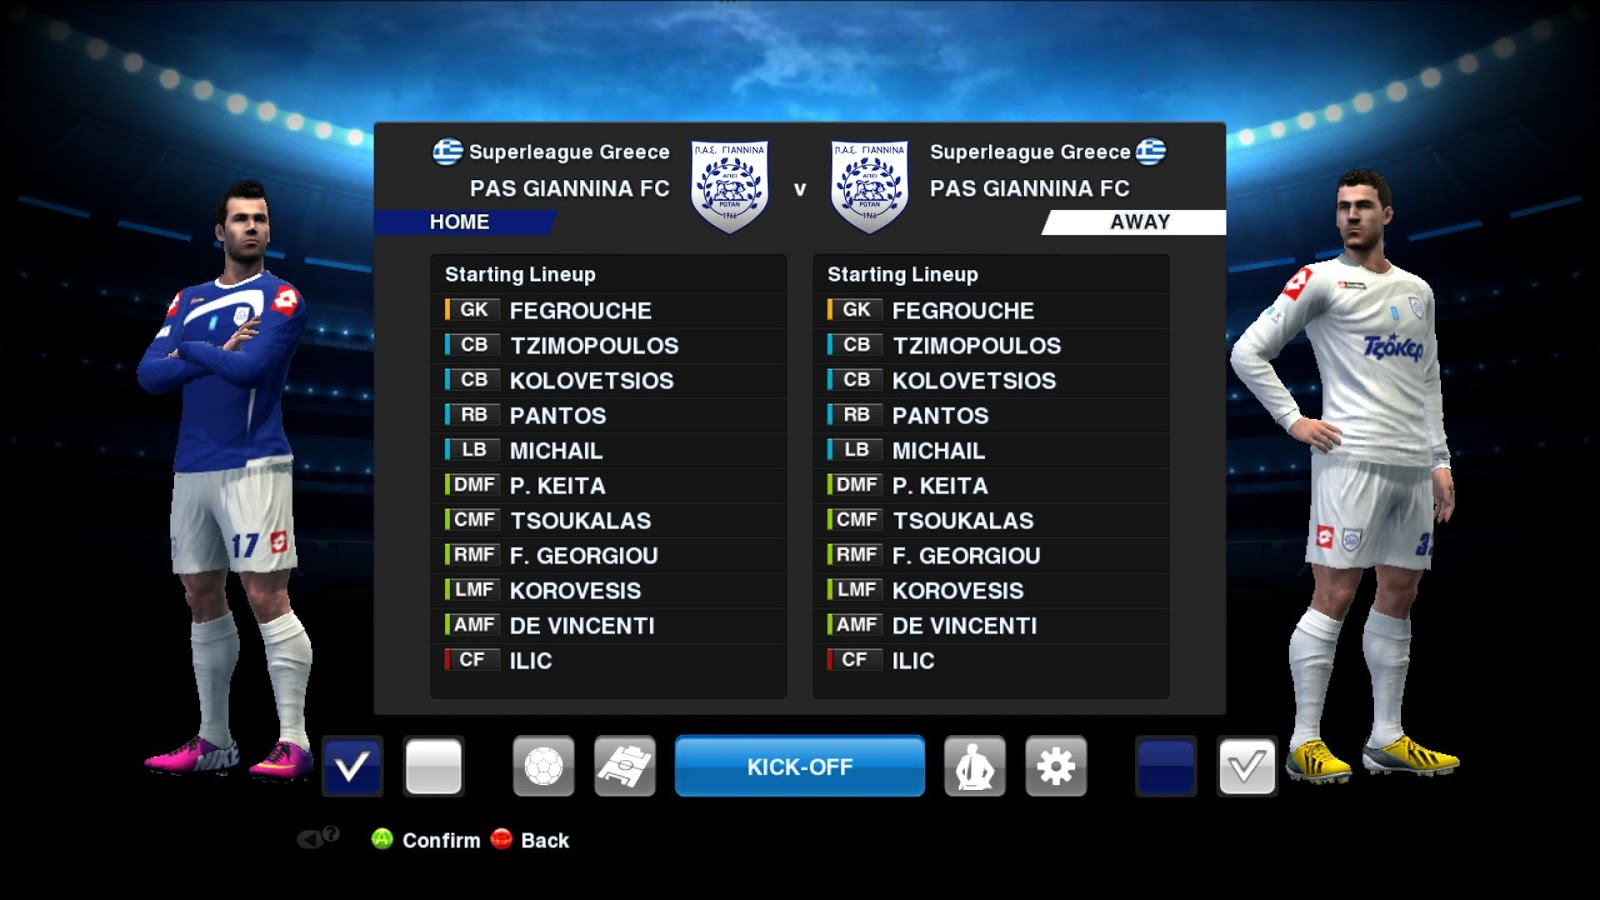 PES 2013 Superleague Greece Squads